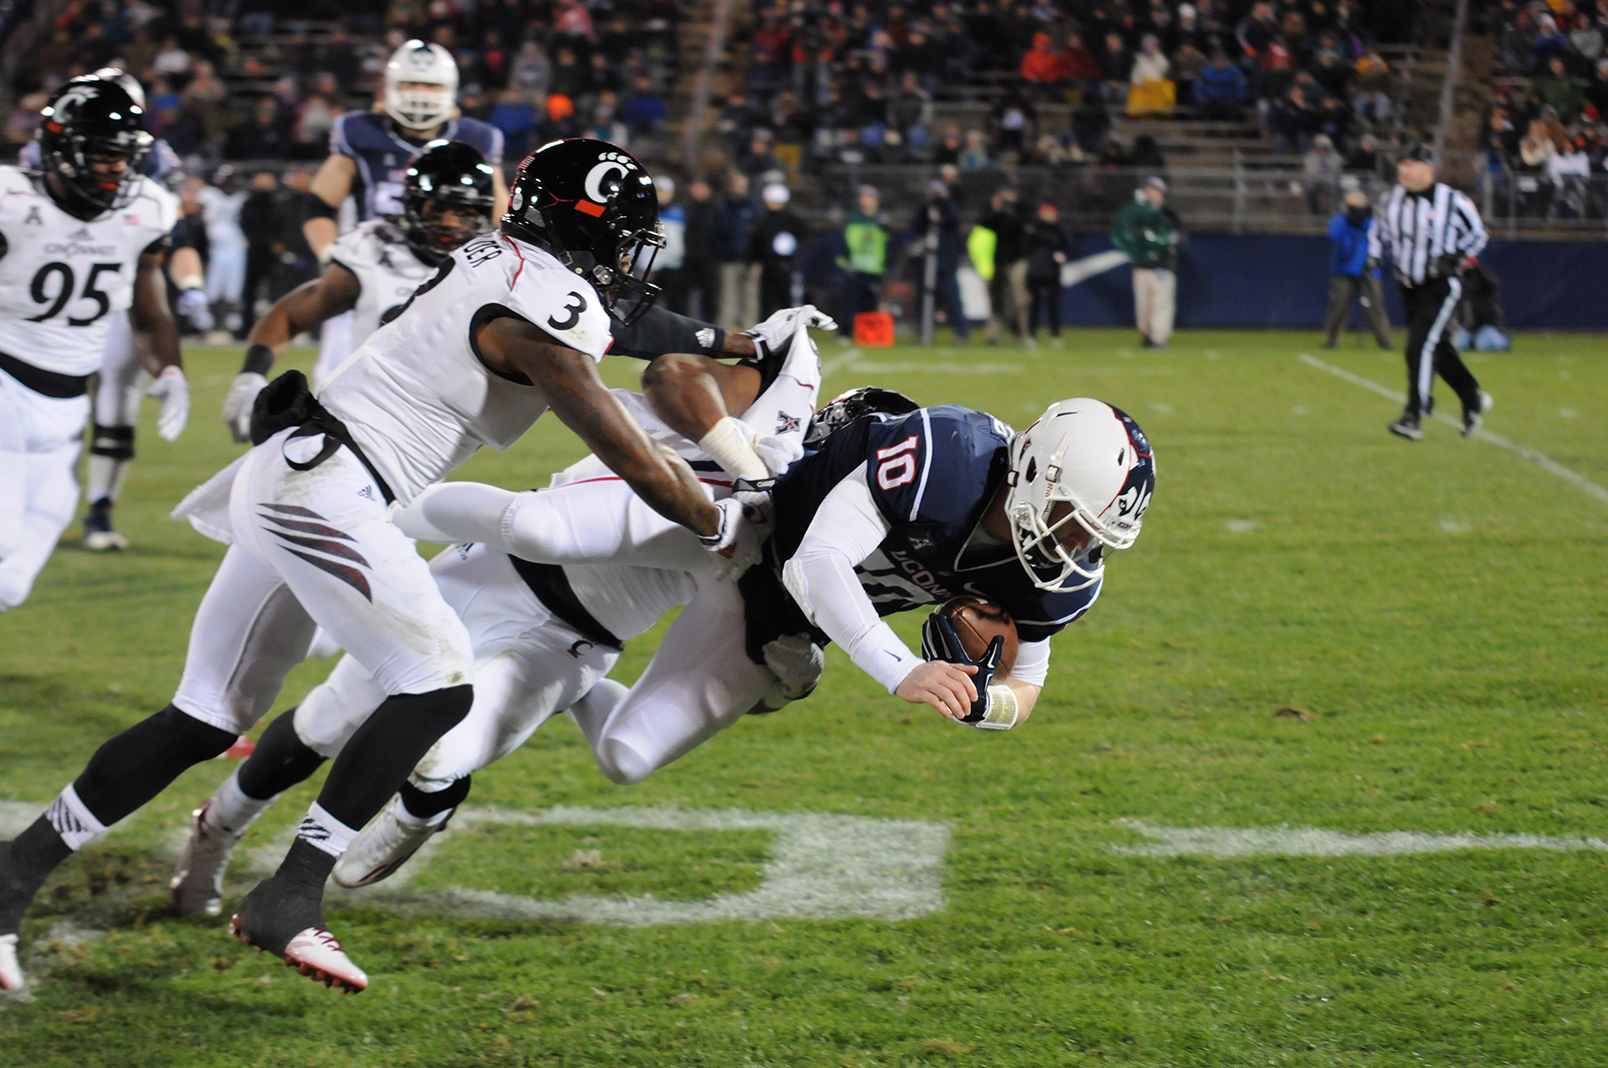 Quarterback Chandler Whitmer dives forward for UConn in last season's 41-0 loss against Cincinnati. The Huskies will take on the Bearcats this Saturday. (File Photo/Daily Campus)